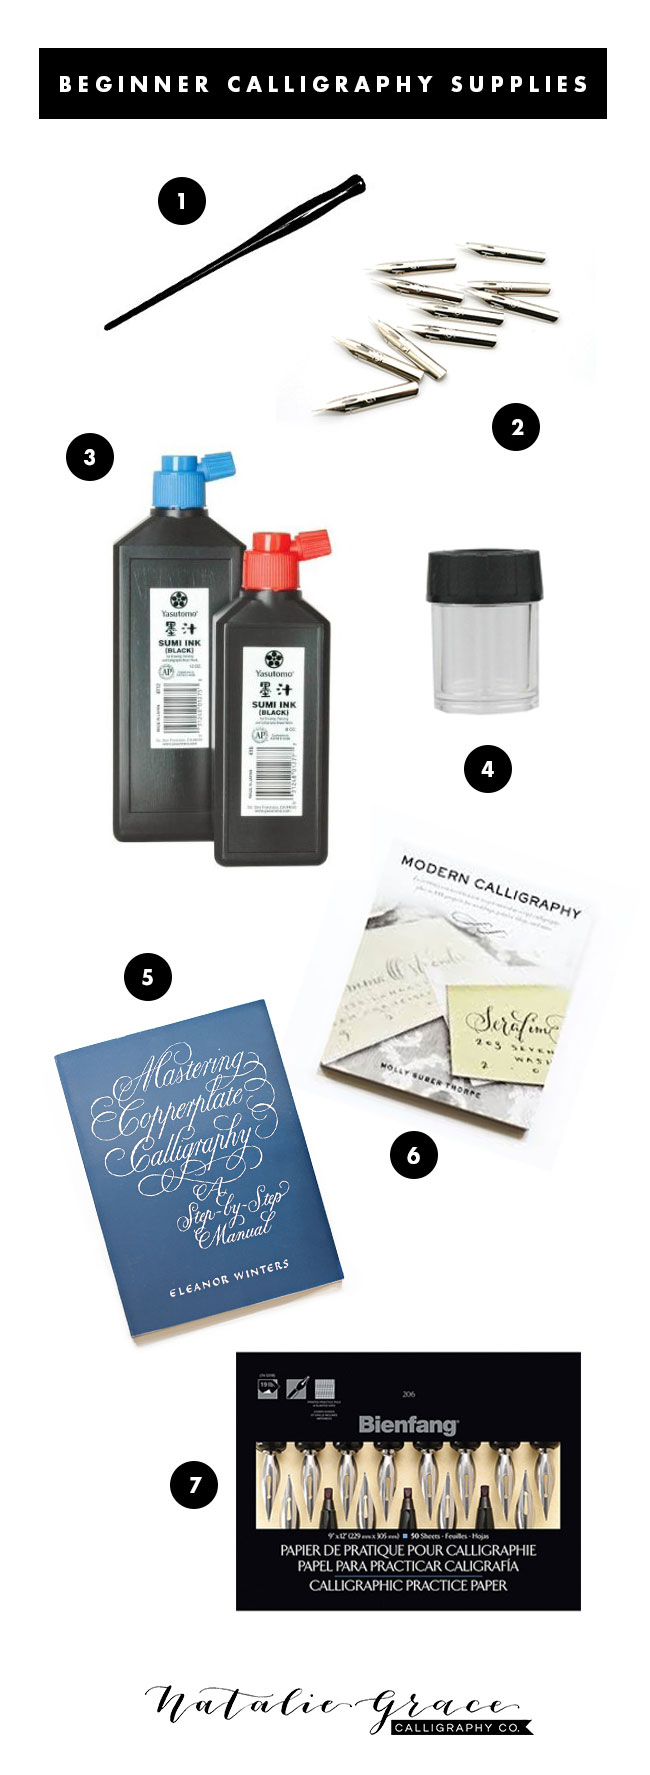 Beginner Supplies | Natalie Grace Calligraphy Co.